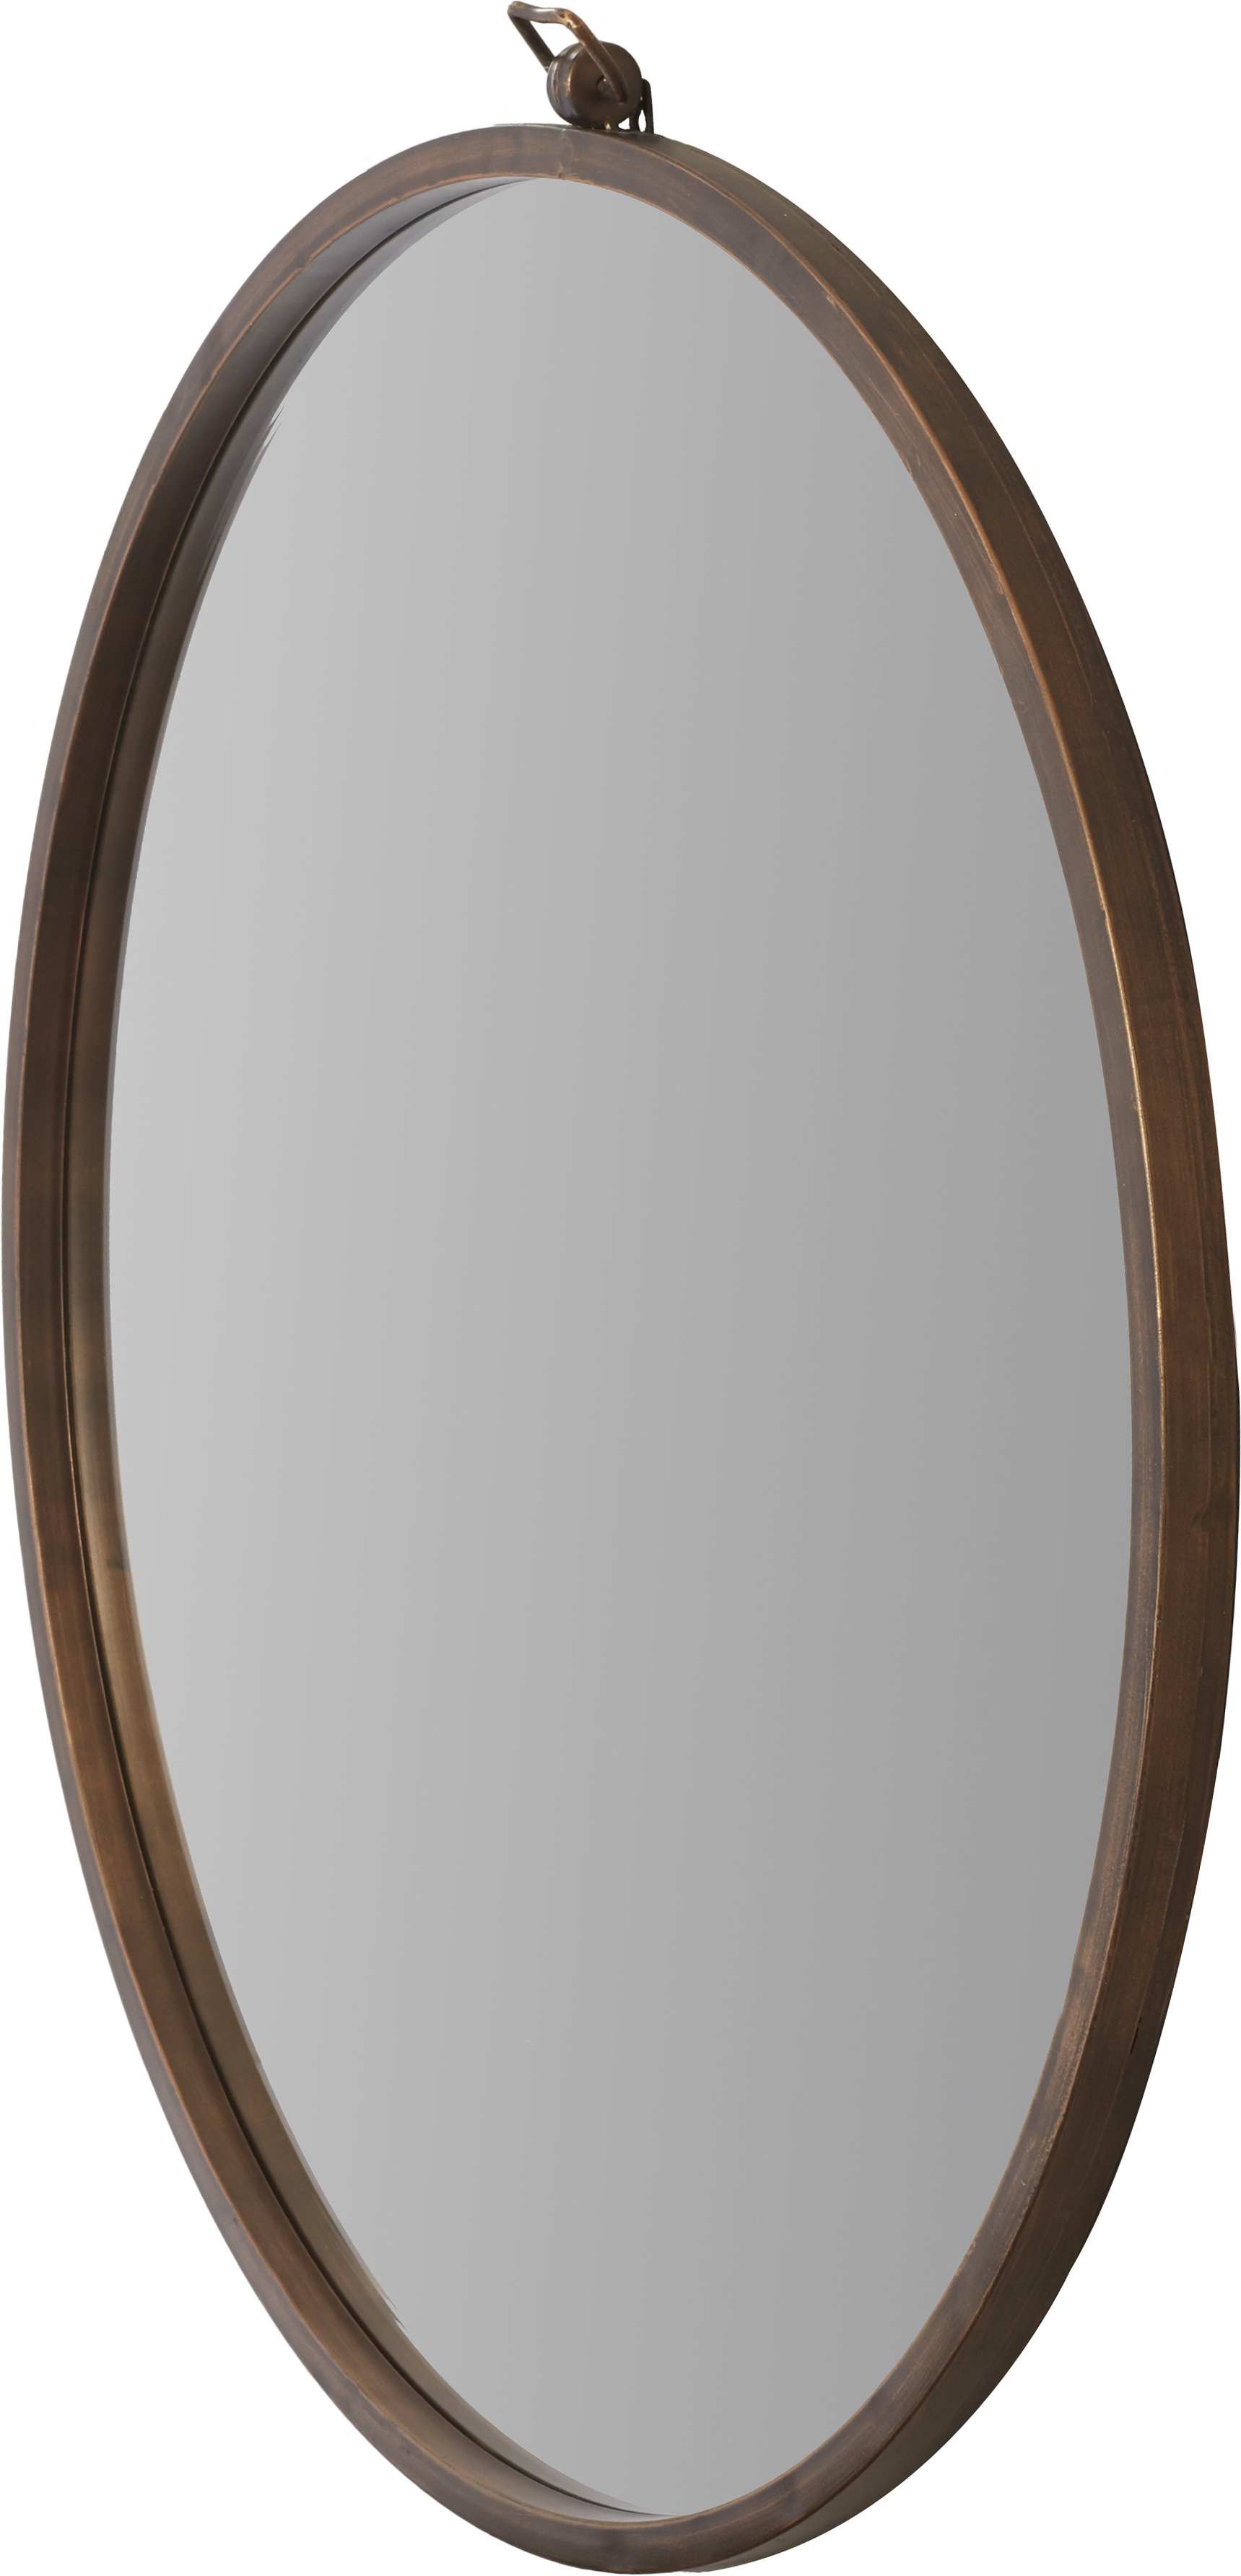 Current Langley Street Minerva Accent Mirror In Vassallo Beaded Bronze Beveled Wall Mirrors (View 4 of 20)